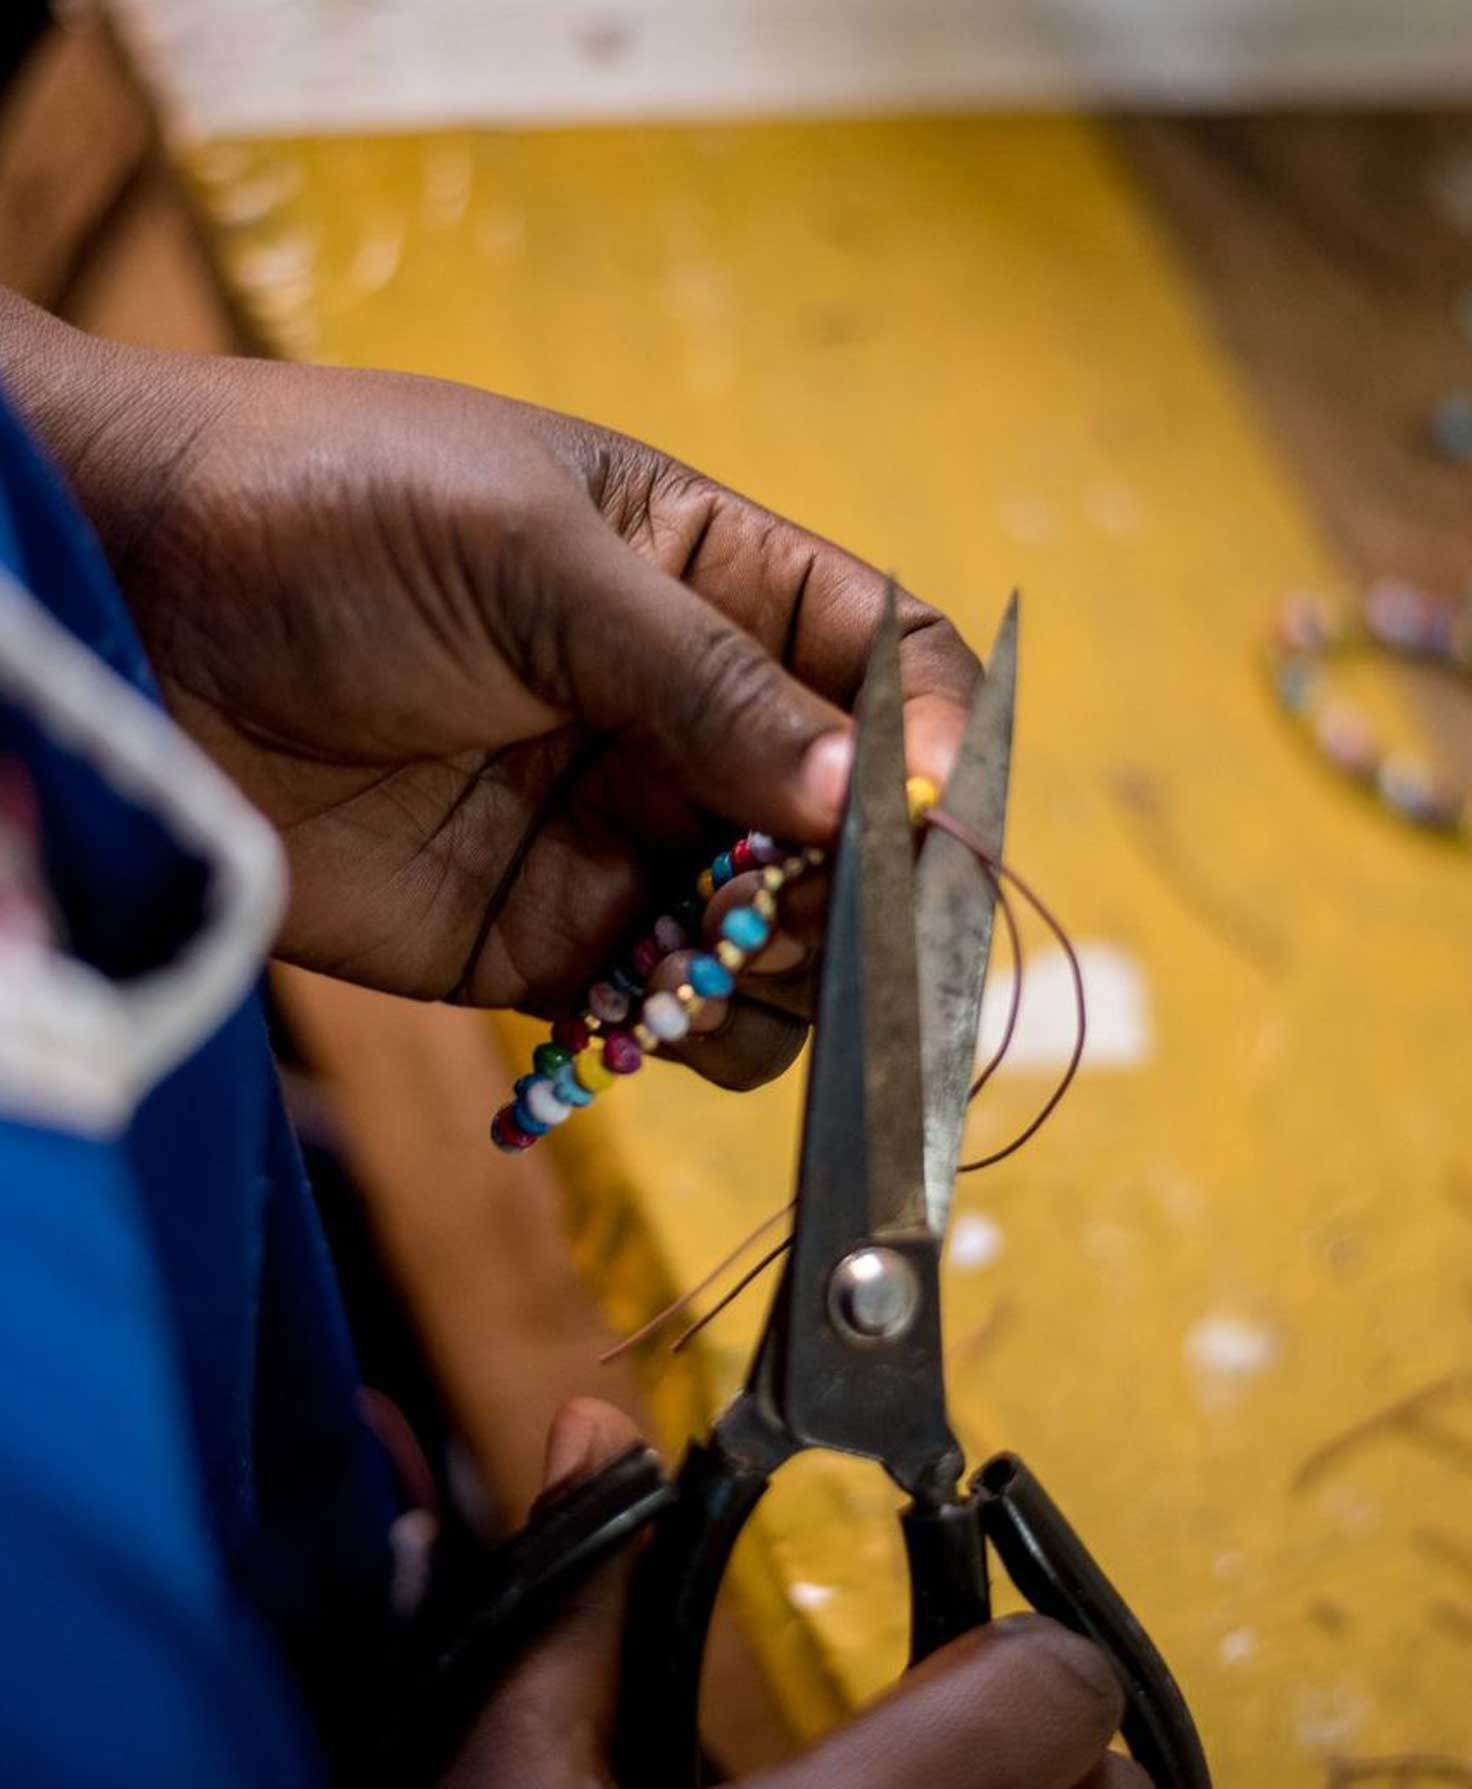 An Artisan sits at a table in a workshop. She smiles brightly at the camera as she shows off the bracelet she is working on. An array of brightly colored beads are strewn on the table in front of her.